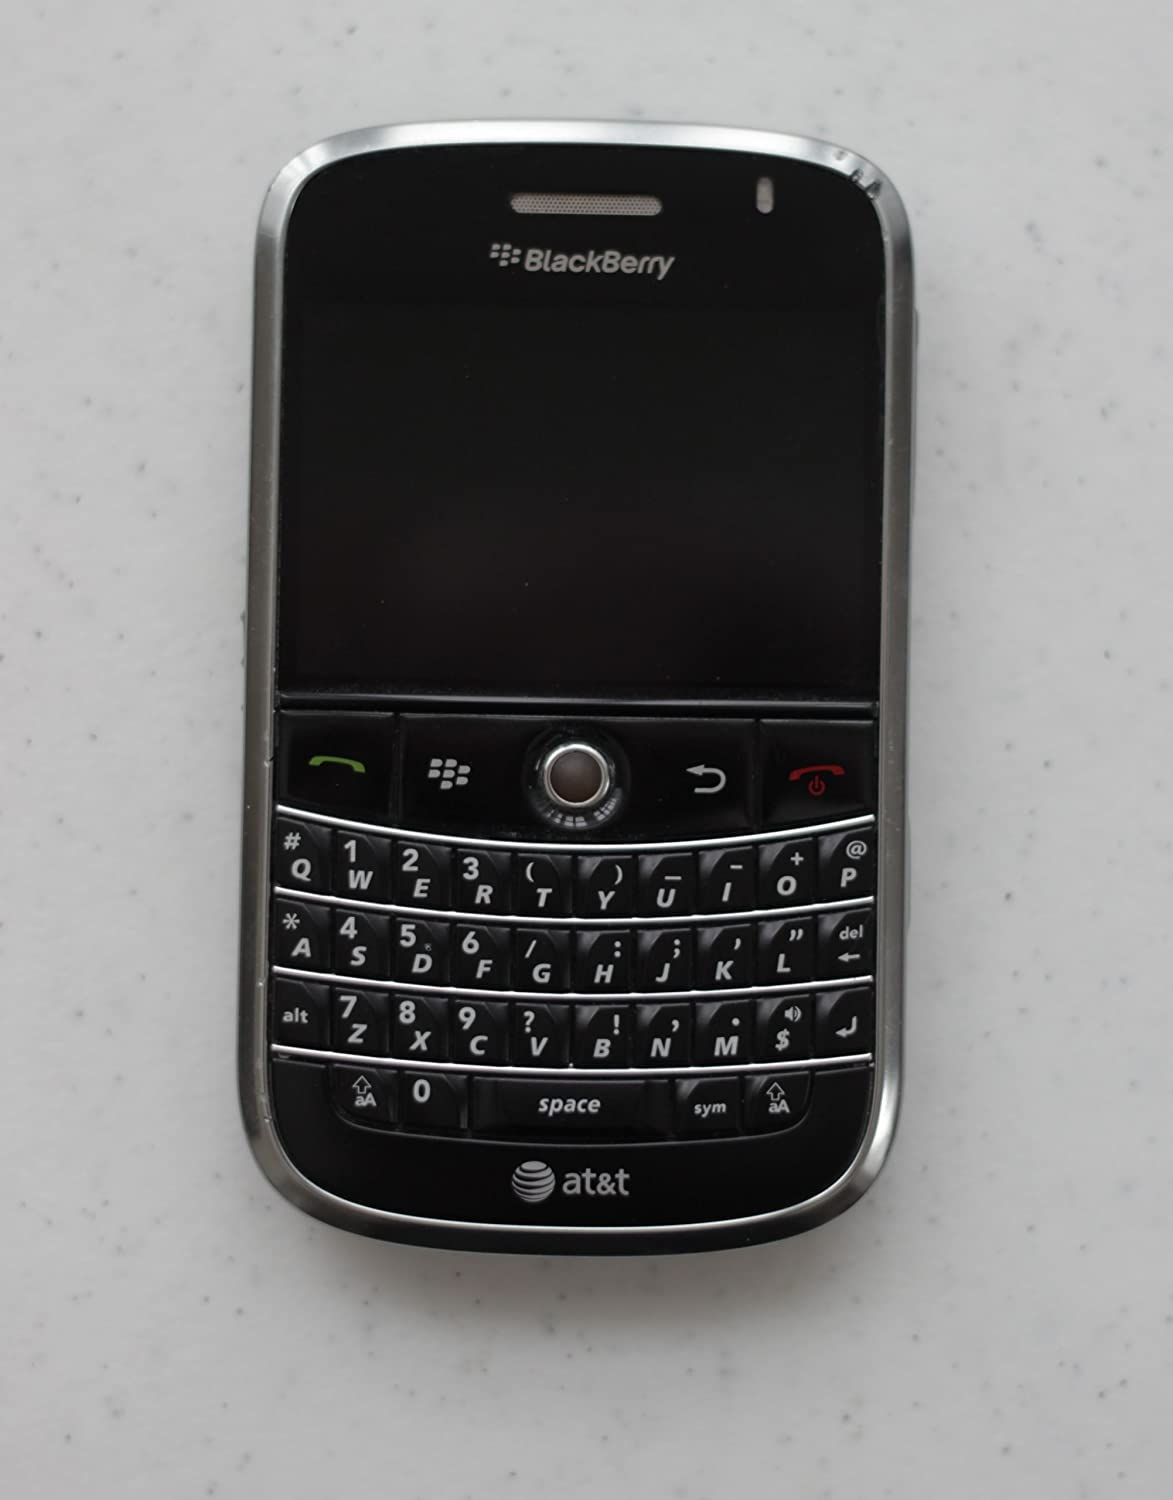 Blackberry Bold 9000 GSM Smartphone for At&t